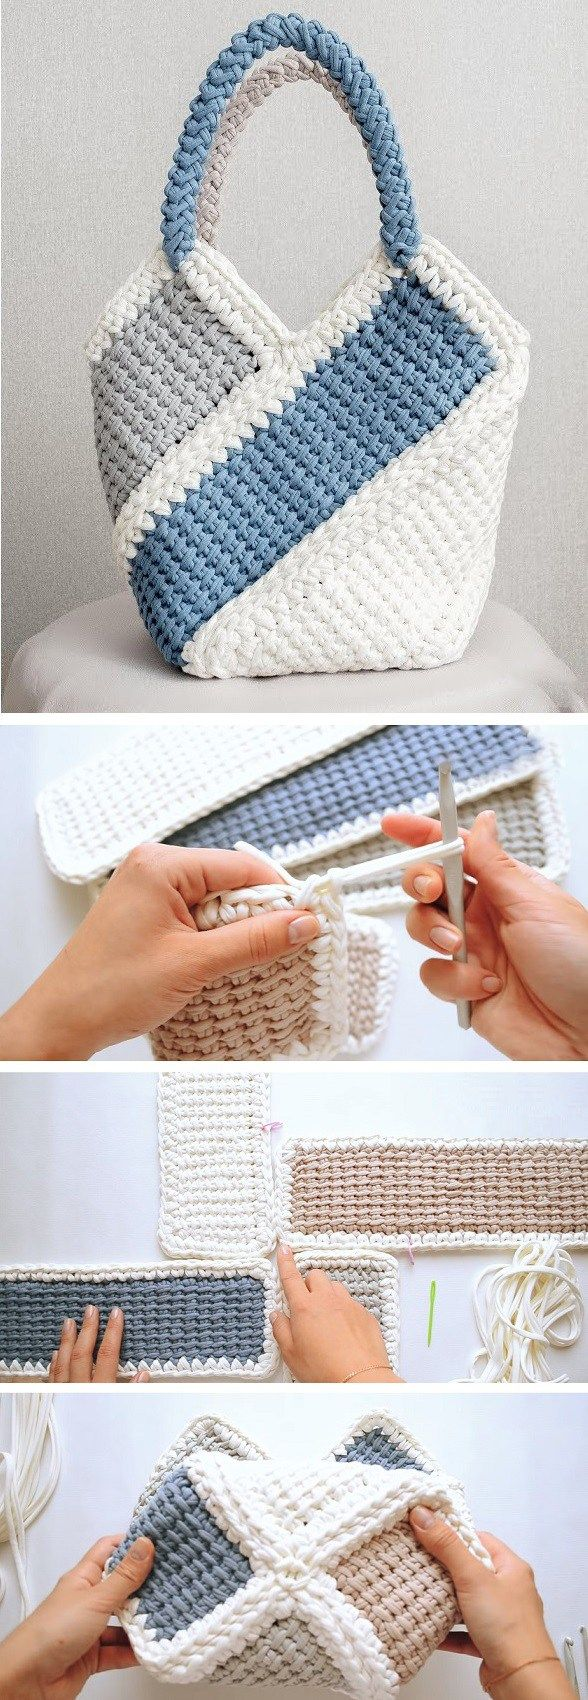 Pretty Lady Bag Crochet Tutorial